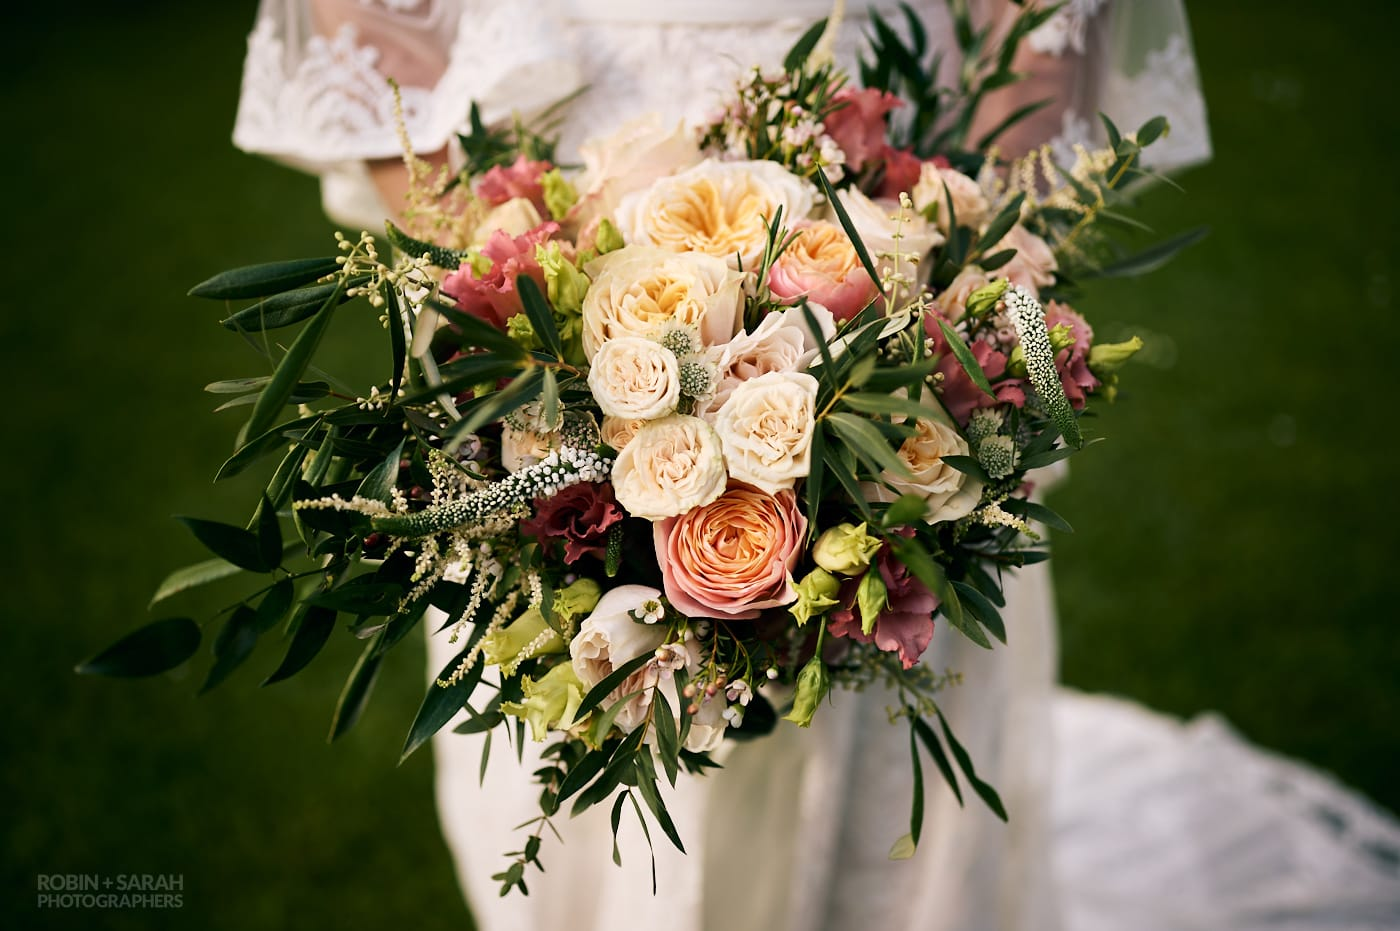 Beautiful wedding bouquet with peach and pink flowers